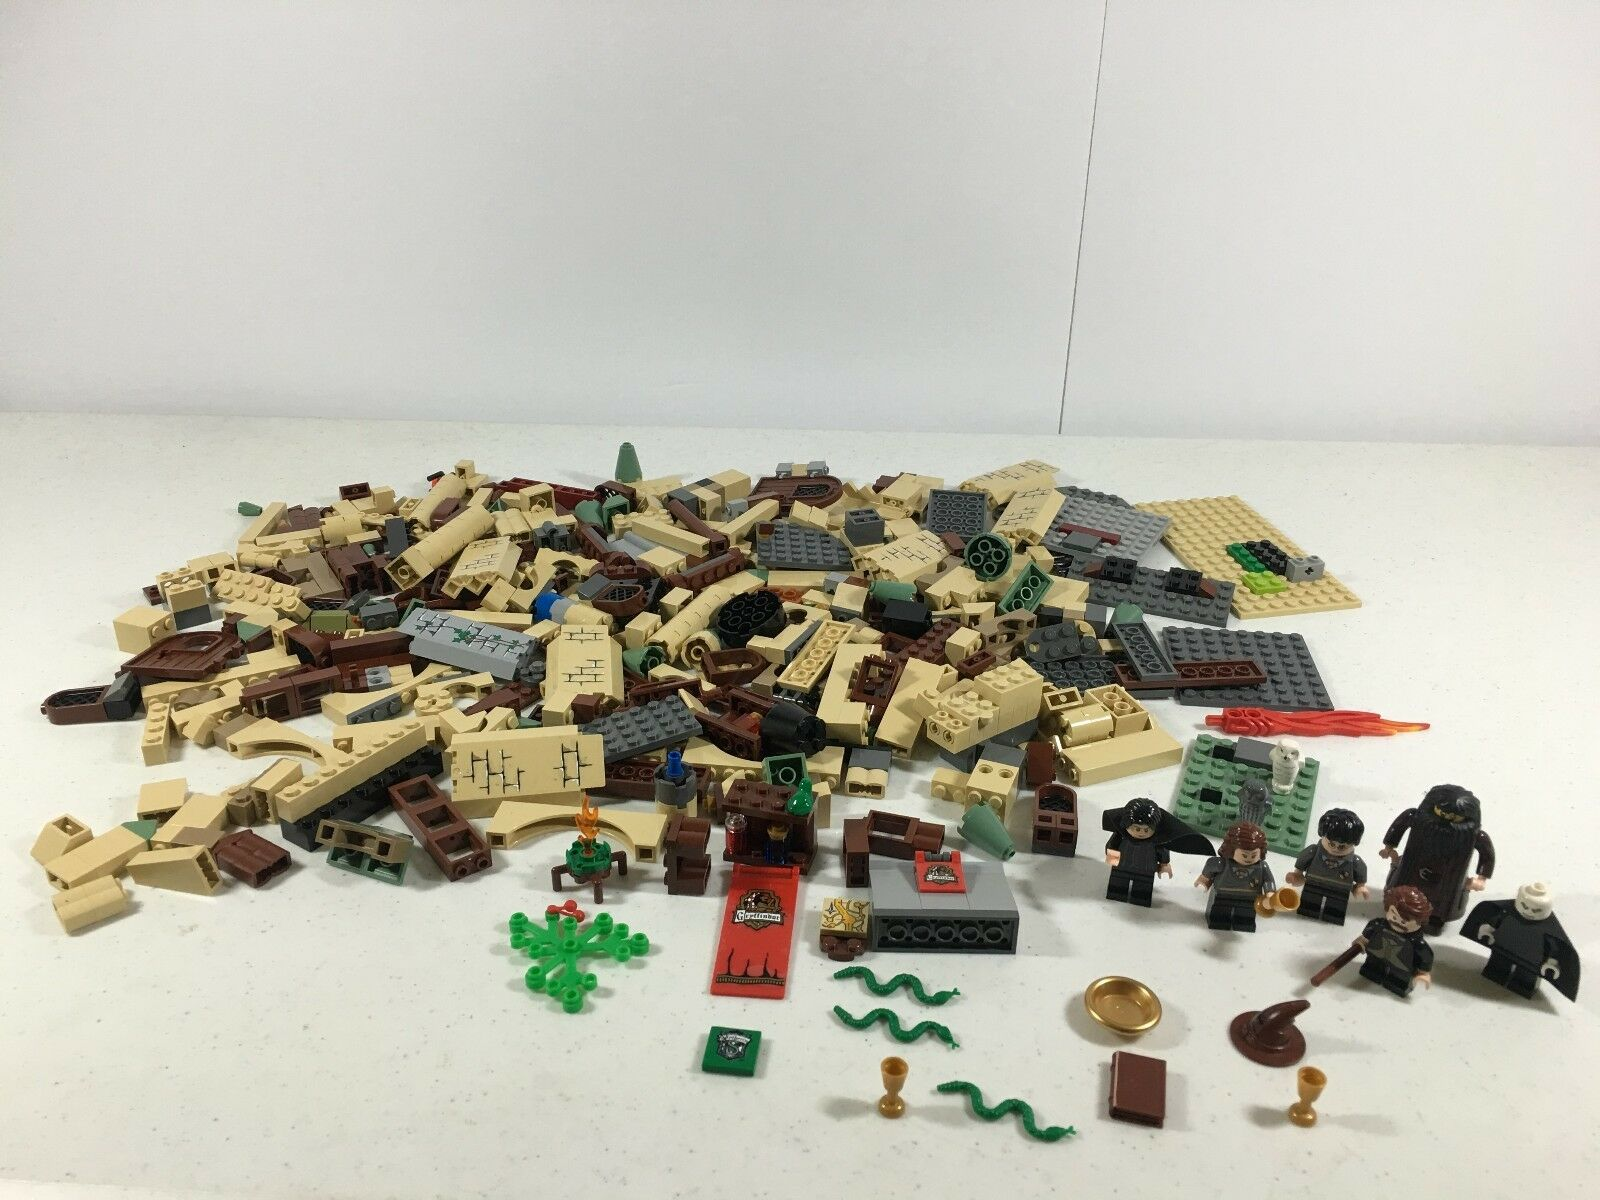 Lego Harry Potter Mixed Lot Mini Figures and Pieces from Hogwarts Castle 4842